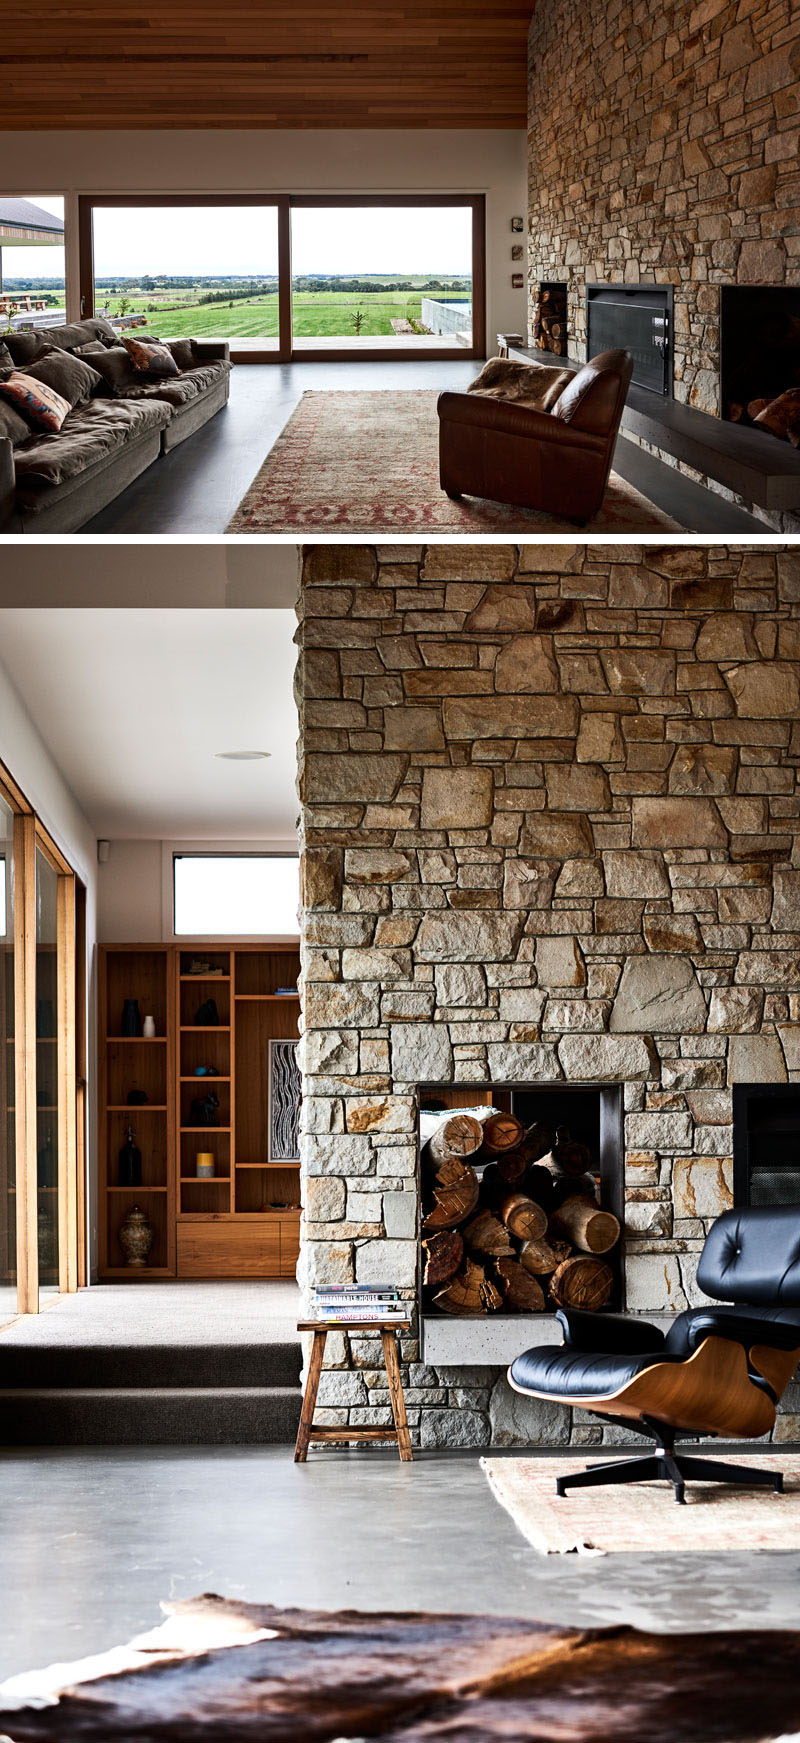 modern-stone-fireplace-with-firewood-storage-111017-1241-06 (1)